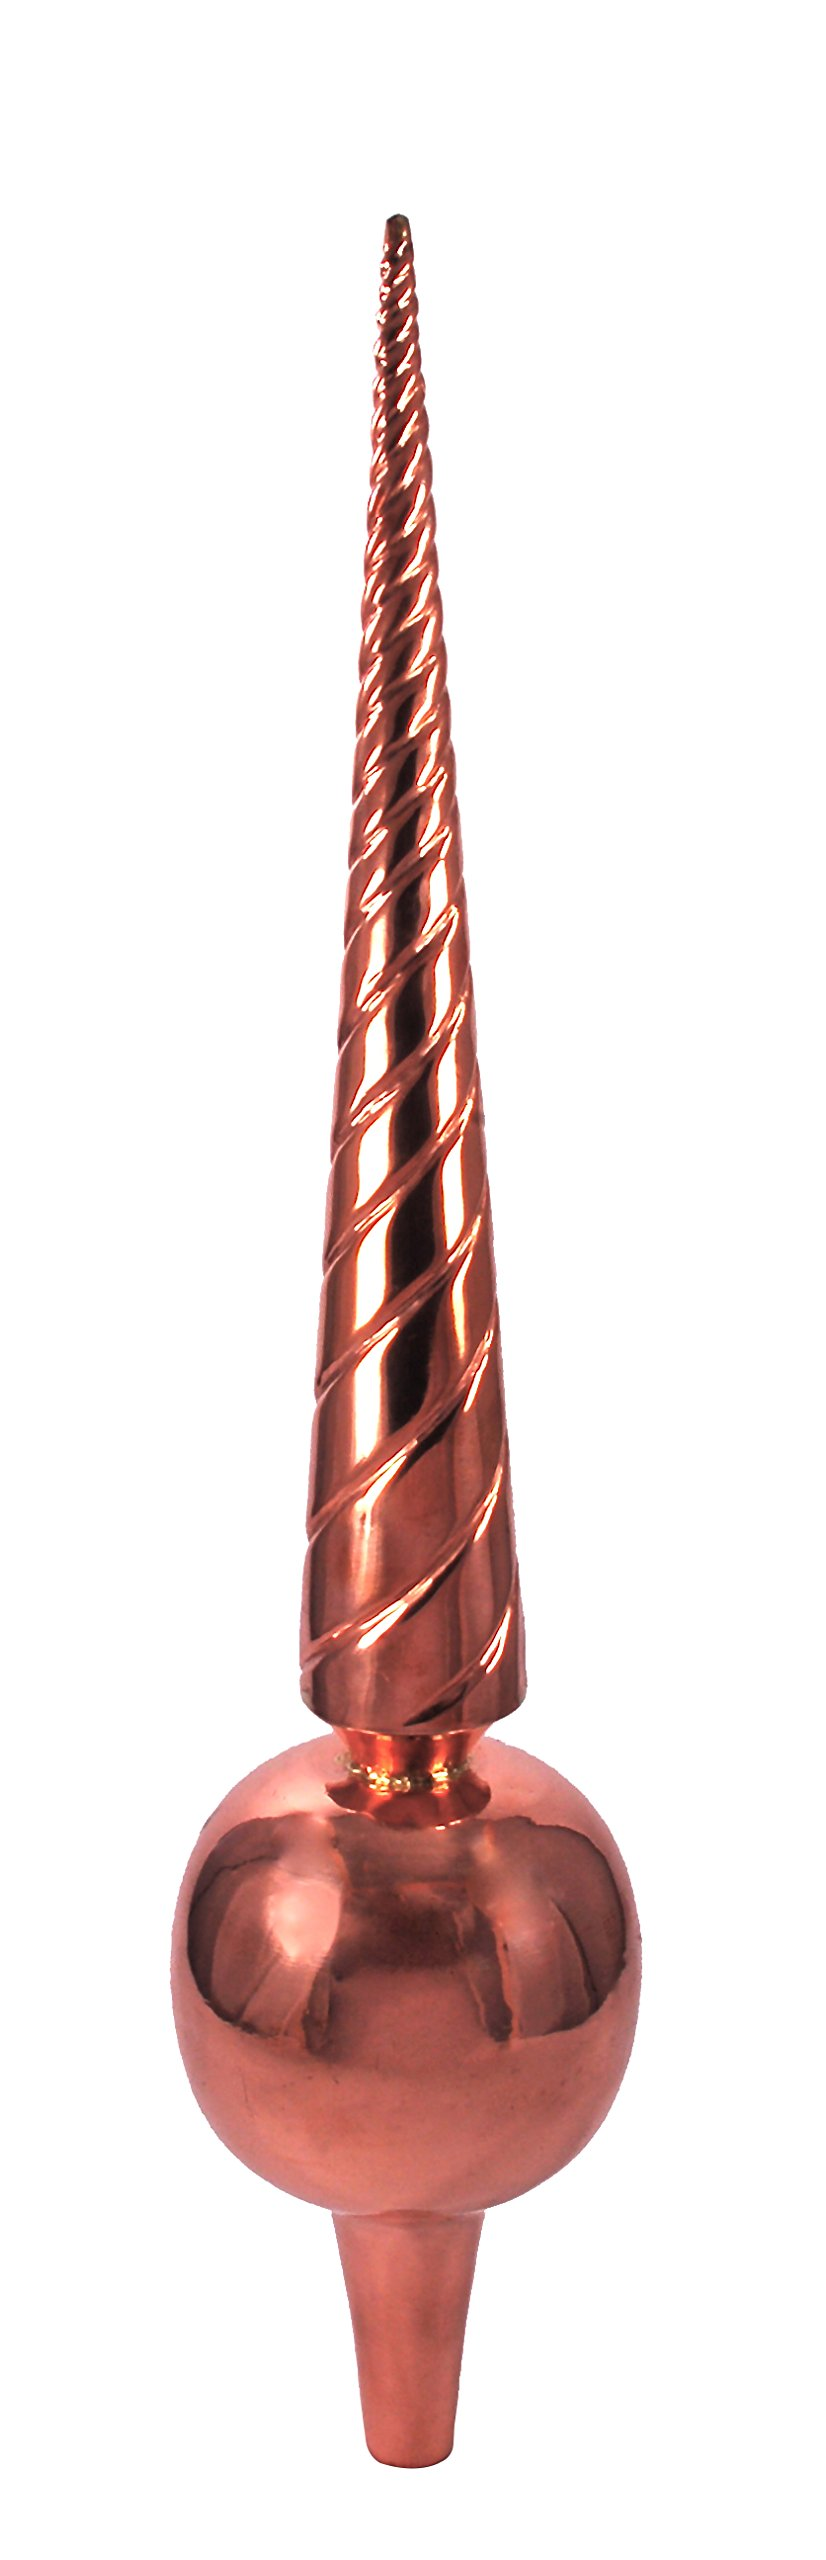 Dalvento Medium Venetian Finial- Copper by Dalvento